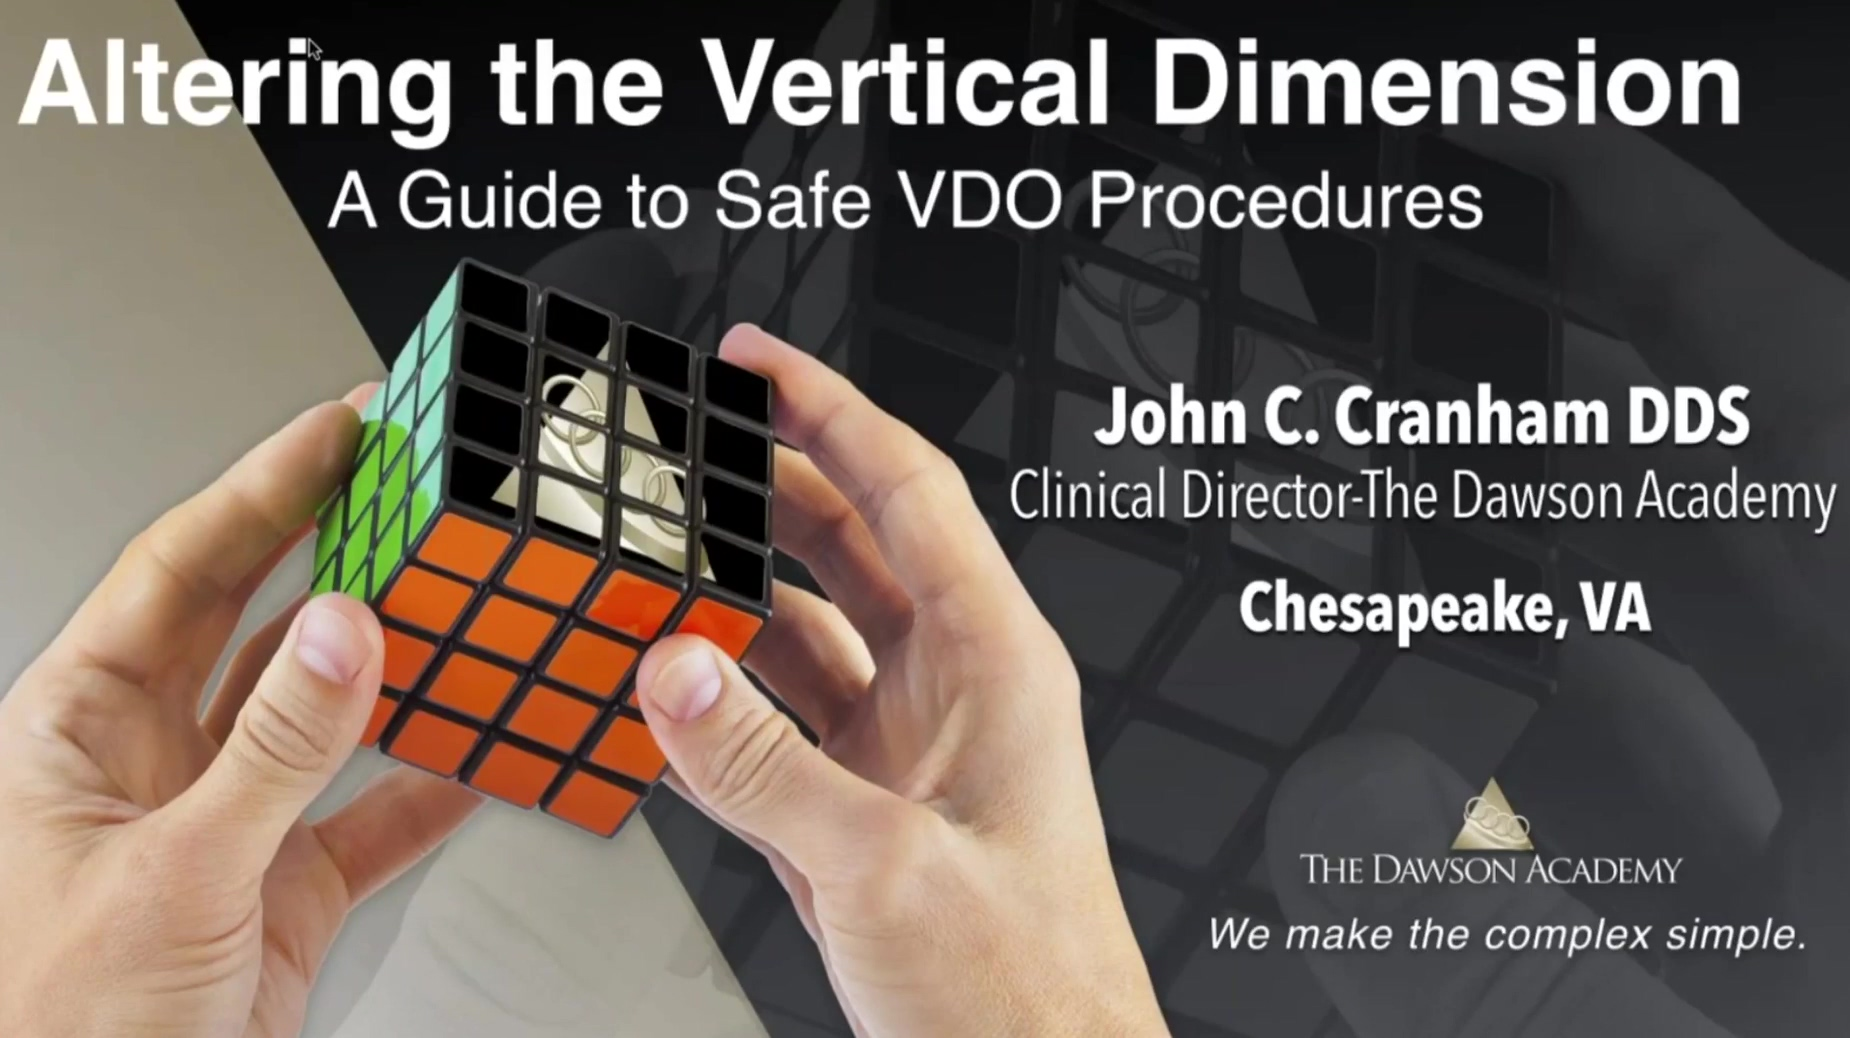 Altering the Vertical Dimension - A Guide to Safe VDO Procedures